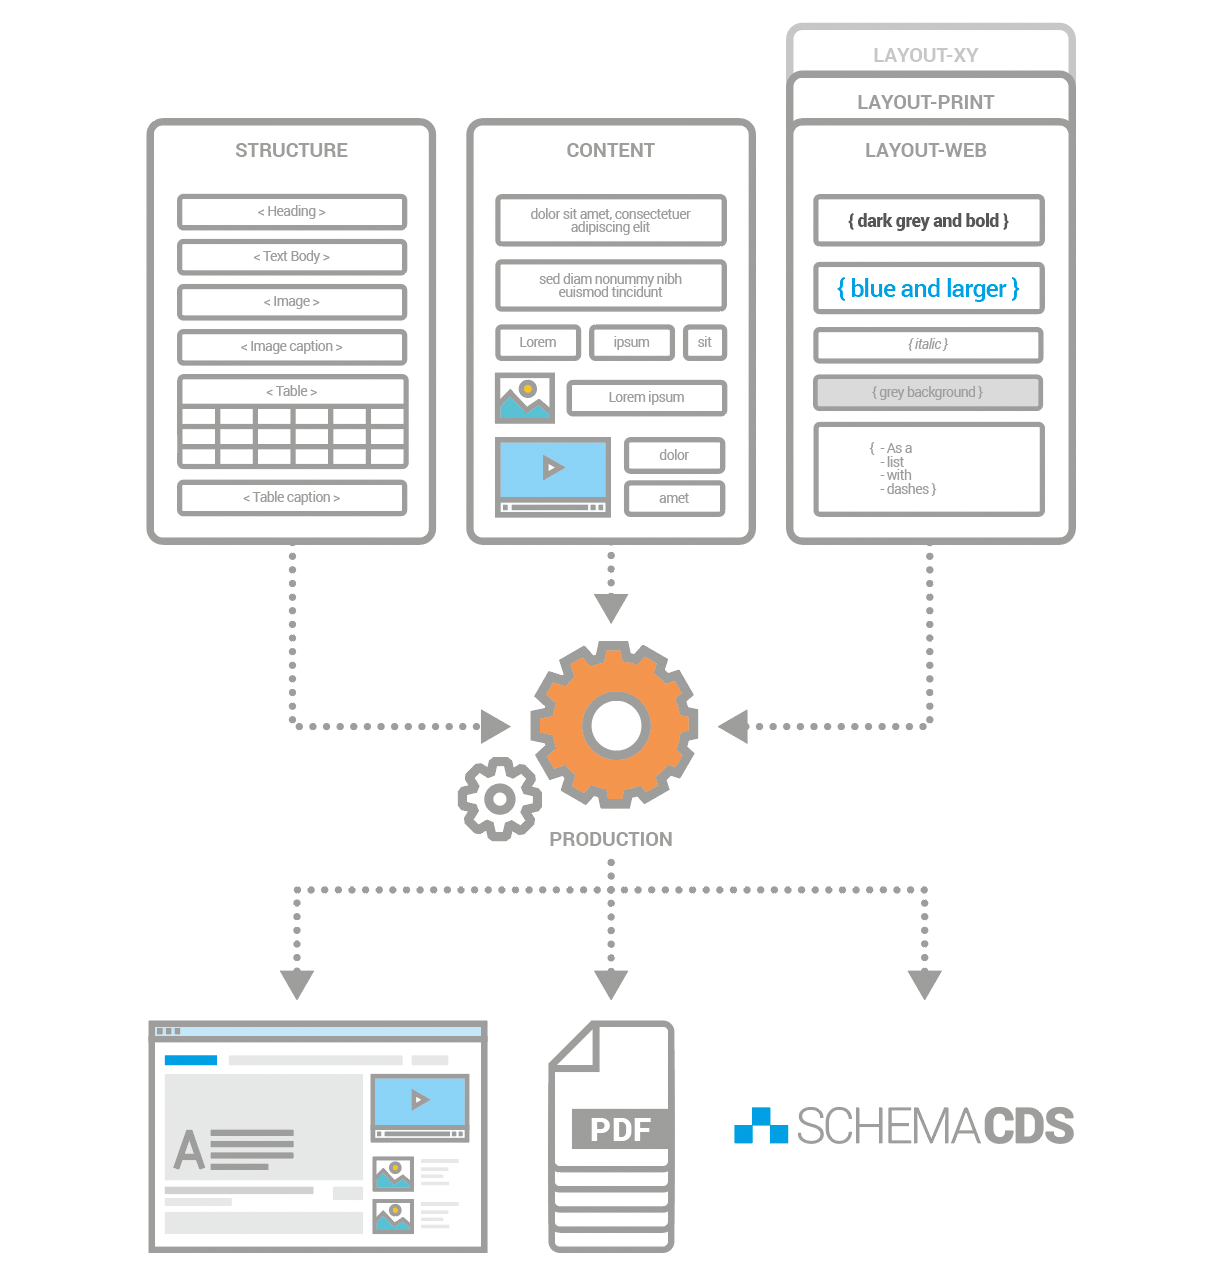 Separating structure, content and layout in a Component Content Management System